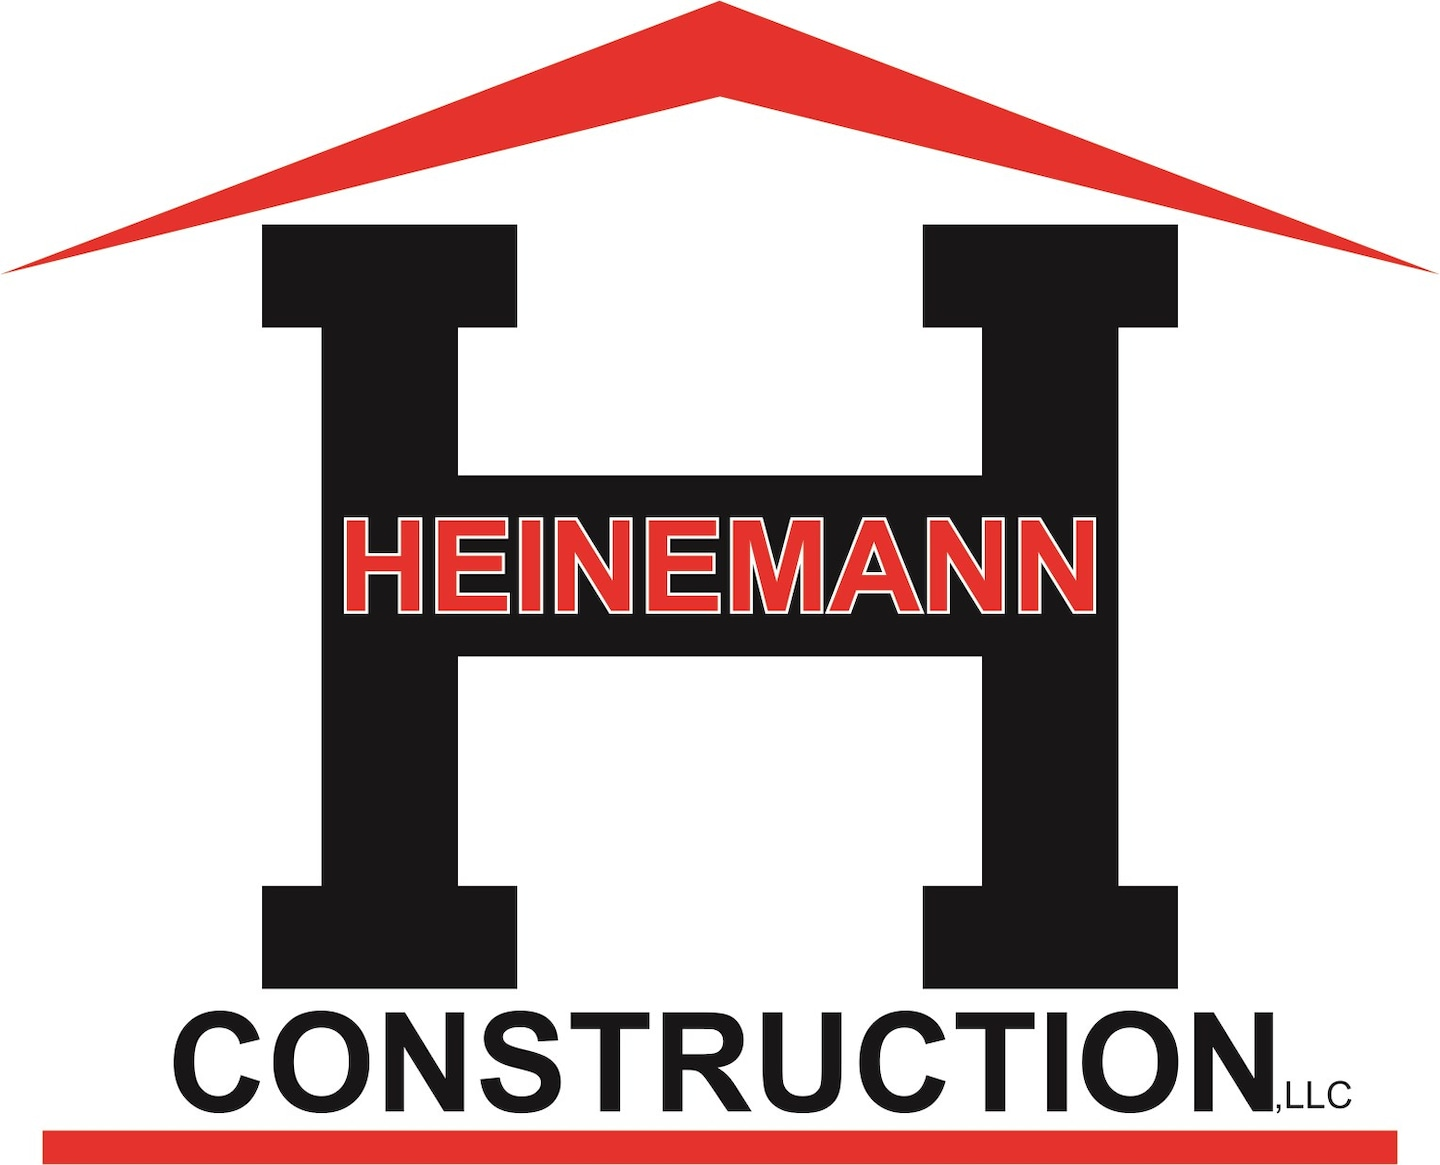 Heinemann Construction LLC